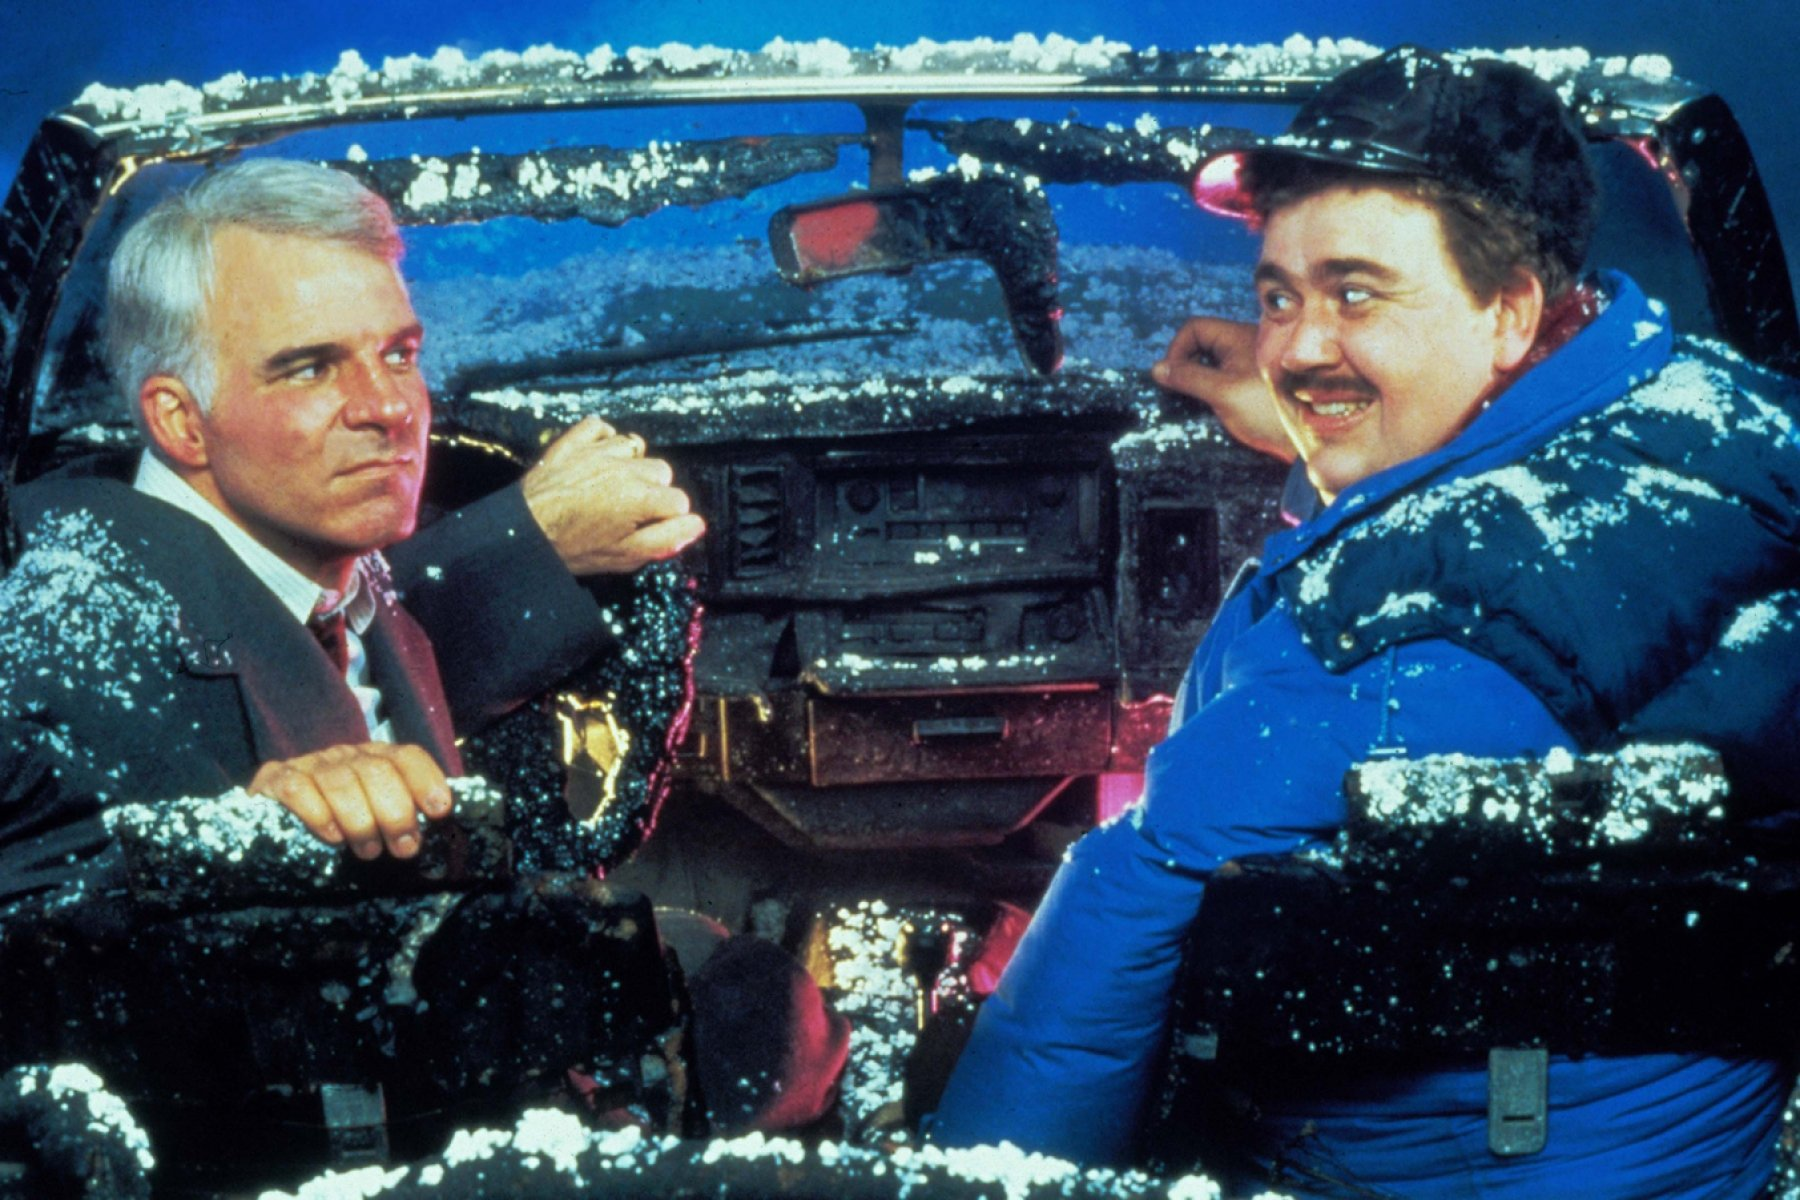 rs planes trains and automobiles 20661100 179d 4dfa 816f 541265fcfe0c 10 Things You Probably Never Knew About Planes, Trains And Automobiles